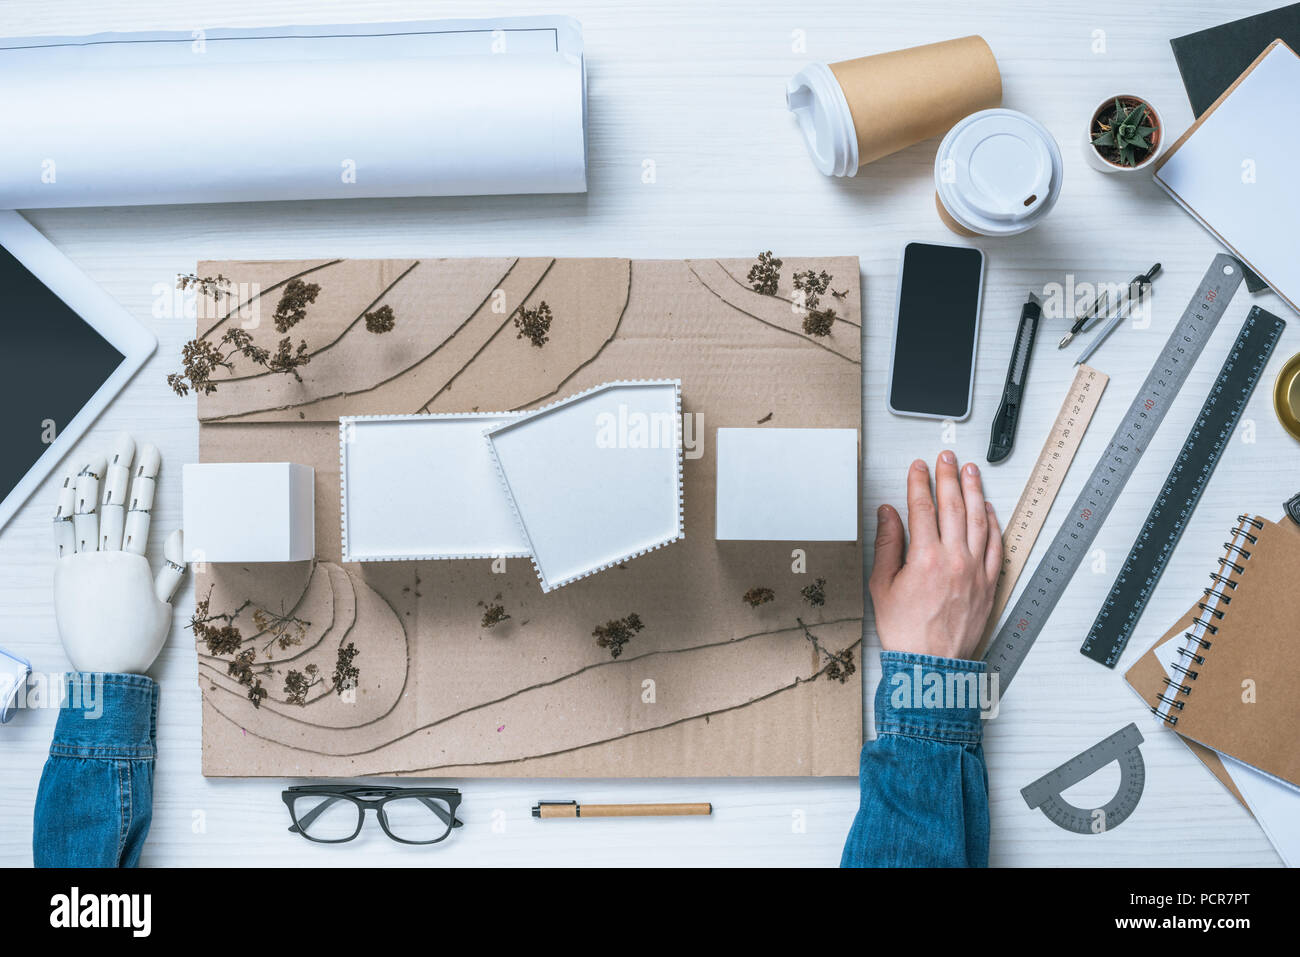 cropped image of male architect with prosthetic arm sitting at table with model of house, rulers, blueprint and gadgets - Stock Image